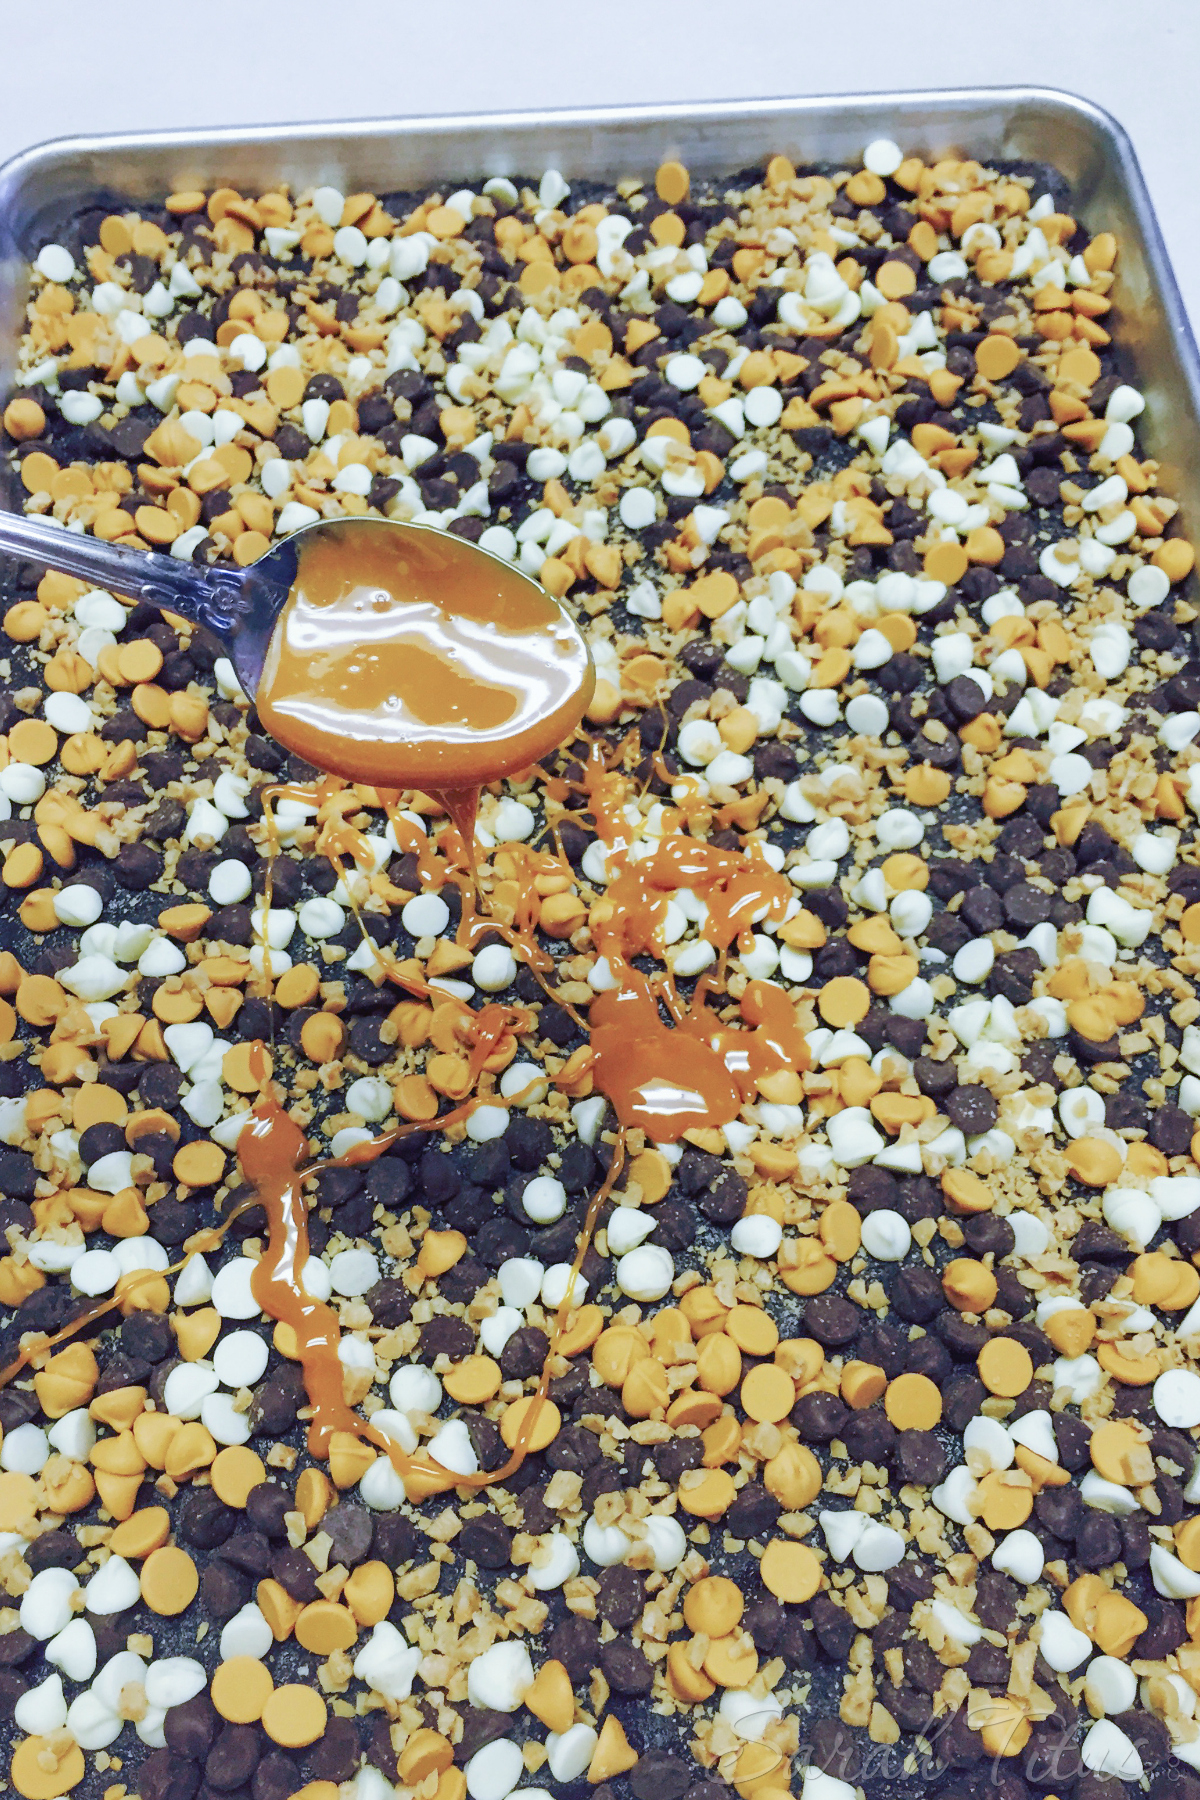 Drizzling melted caramel over the Salted Caramel Magic Bars in a silver baking dish